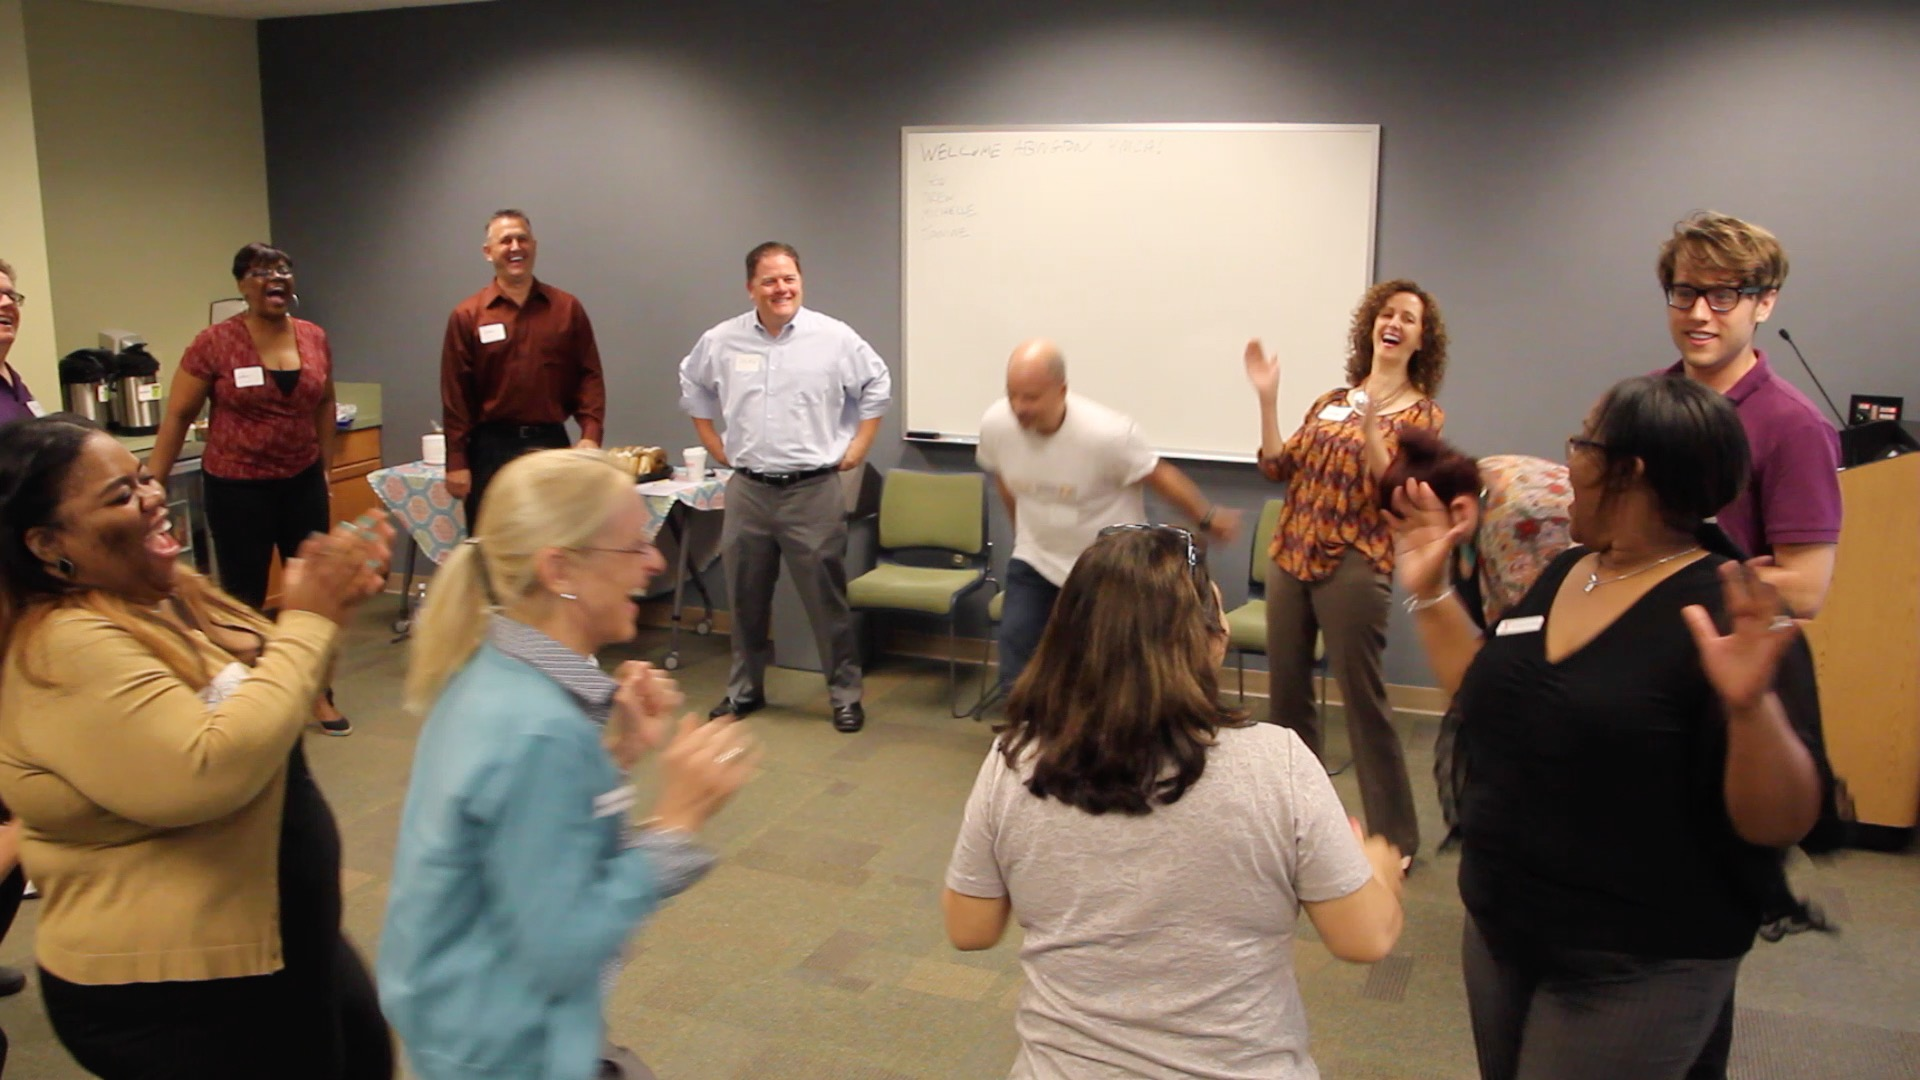 Creative Corporate Training at Freedom Valley YMCA